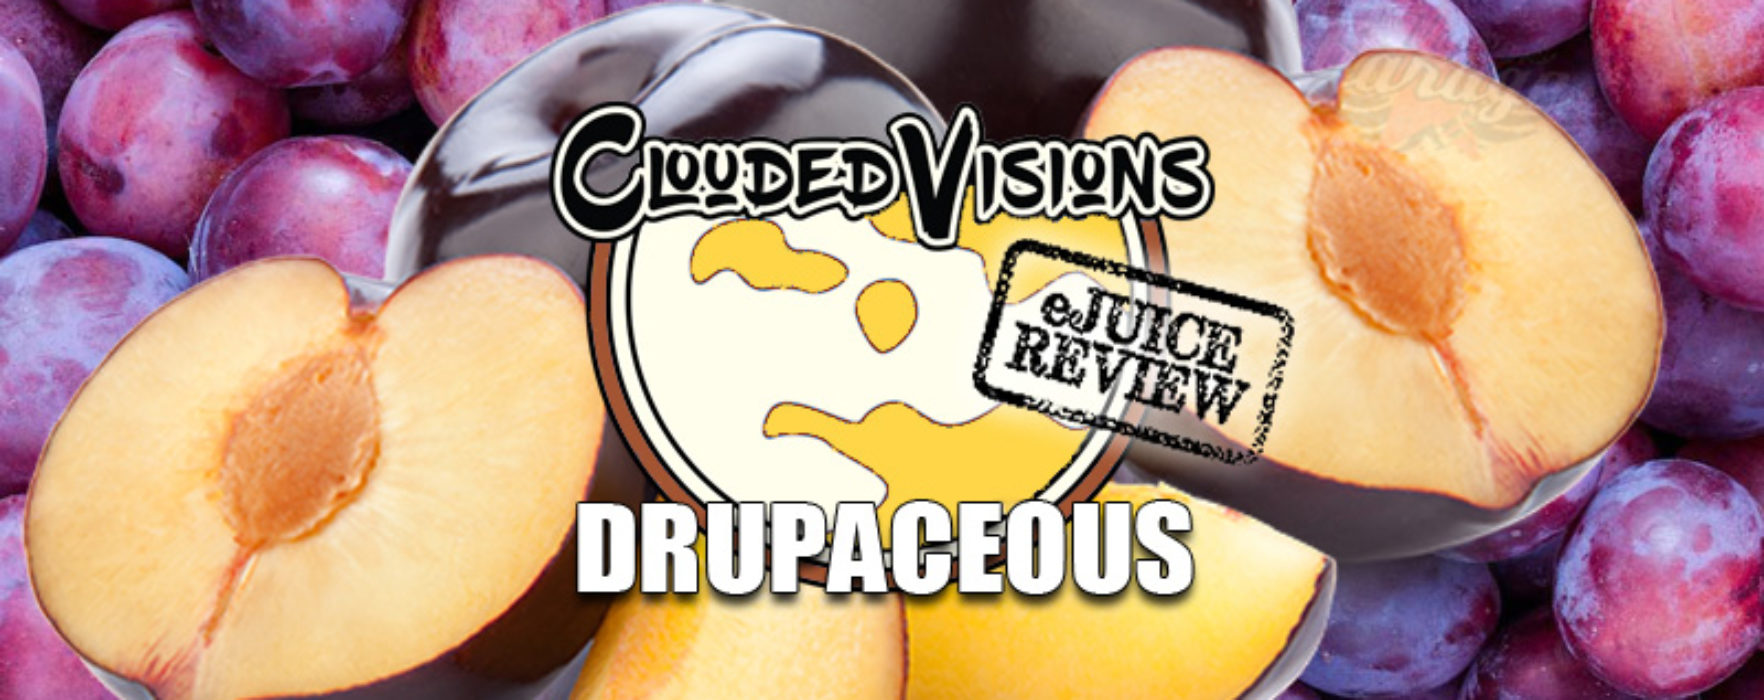 eJuice Review: Drupaceous by Clouded Visions